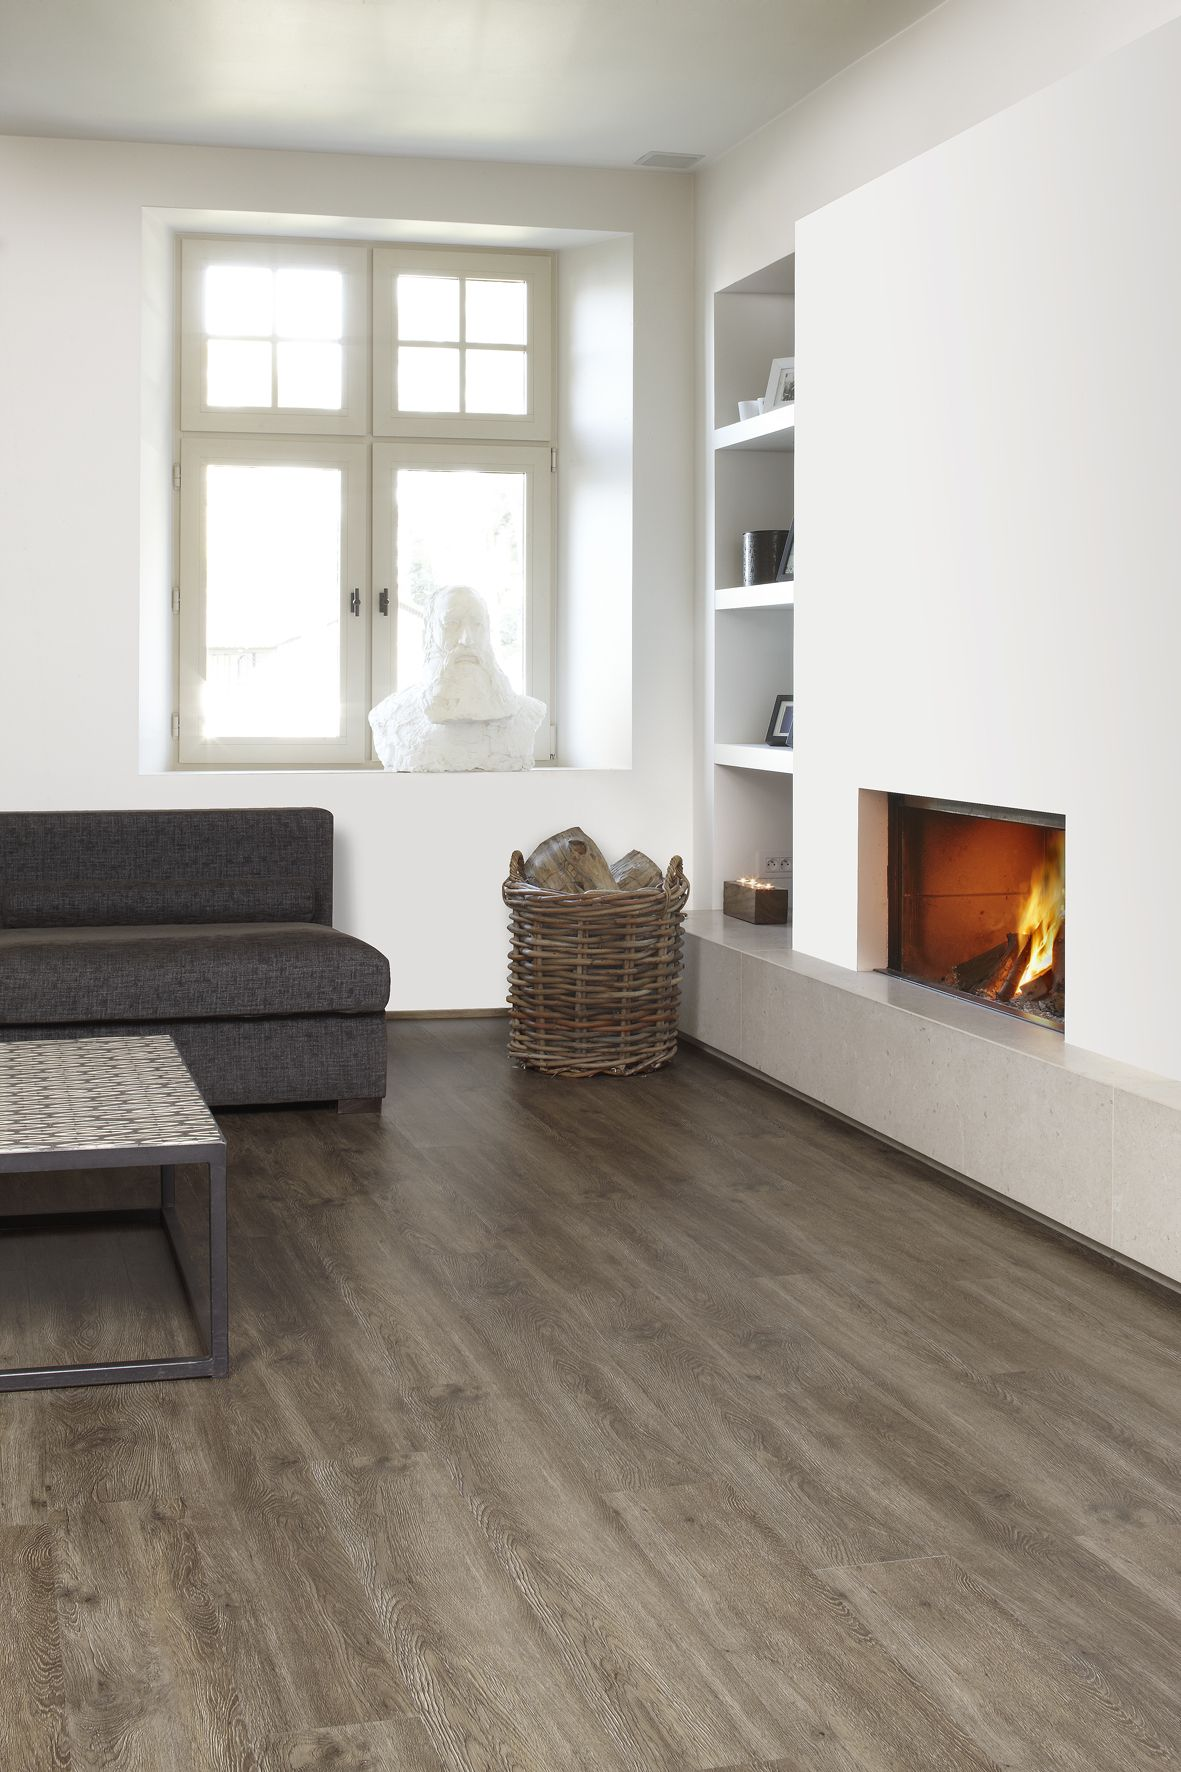 Laminate Floor Tiles With Wood Effect Berryalloc Pureloc Collection By Woodco